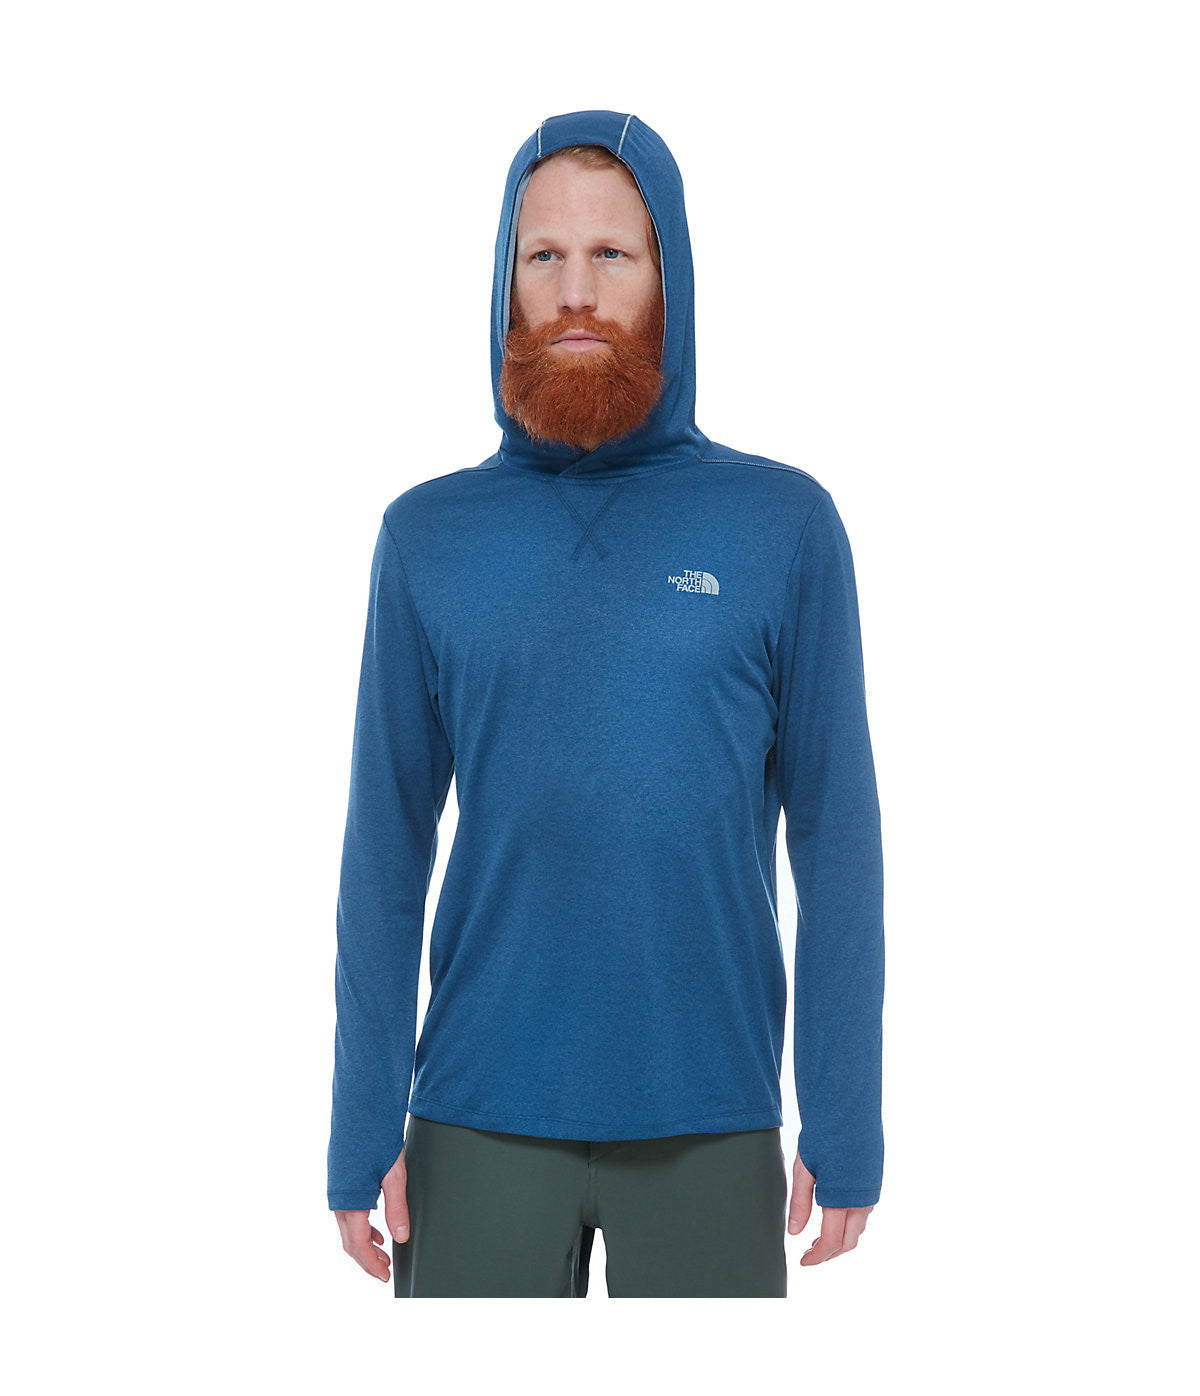 41d7257eb The North Face Mens Reactor Hoodie